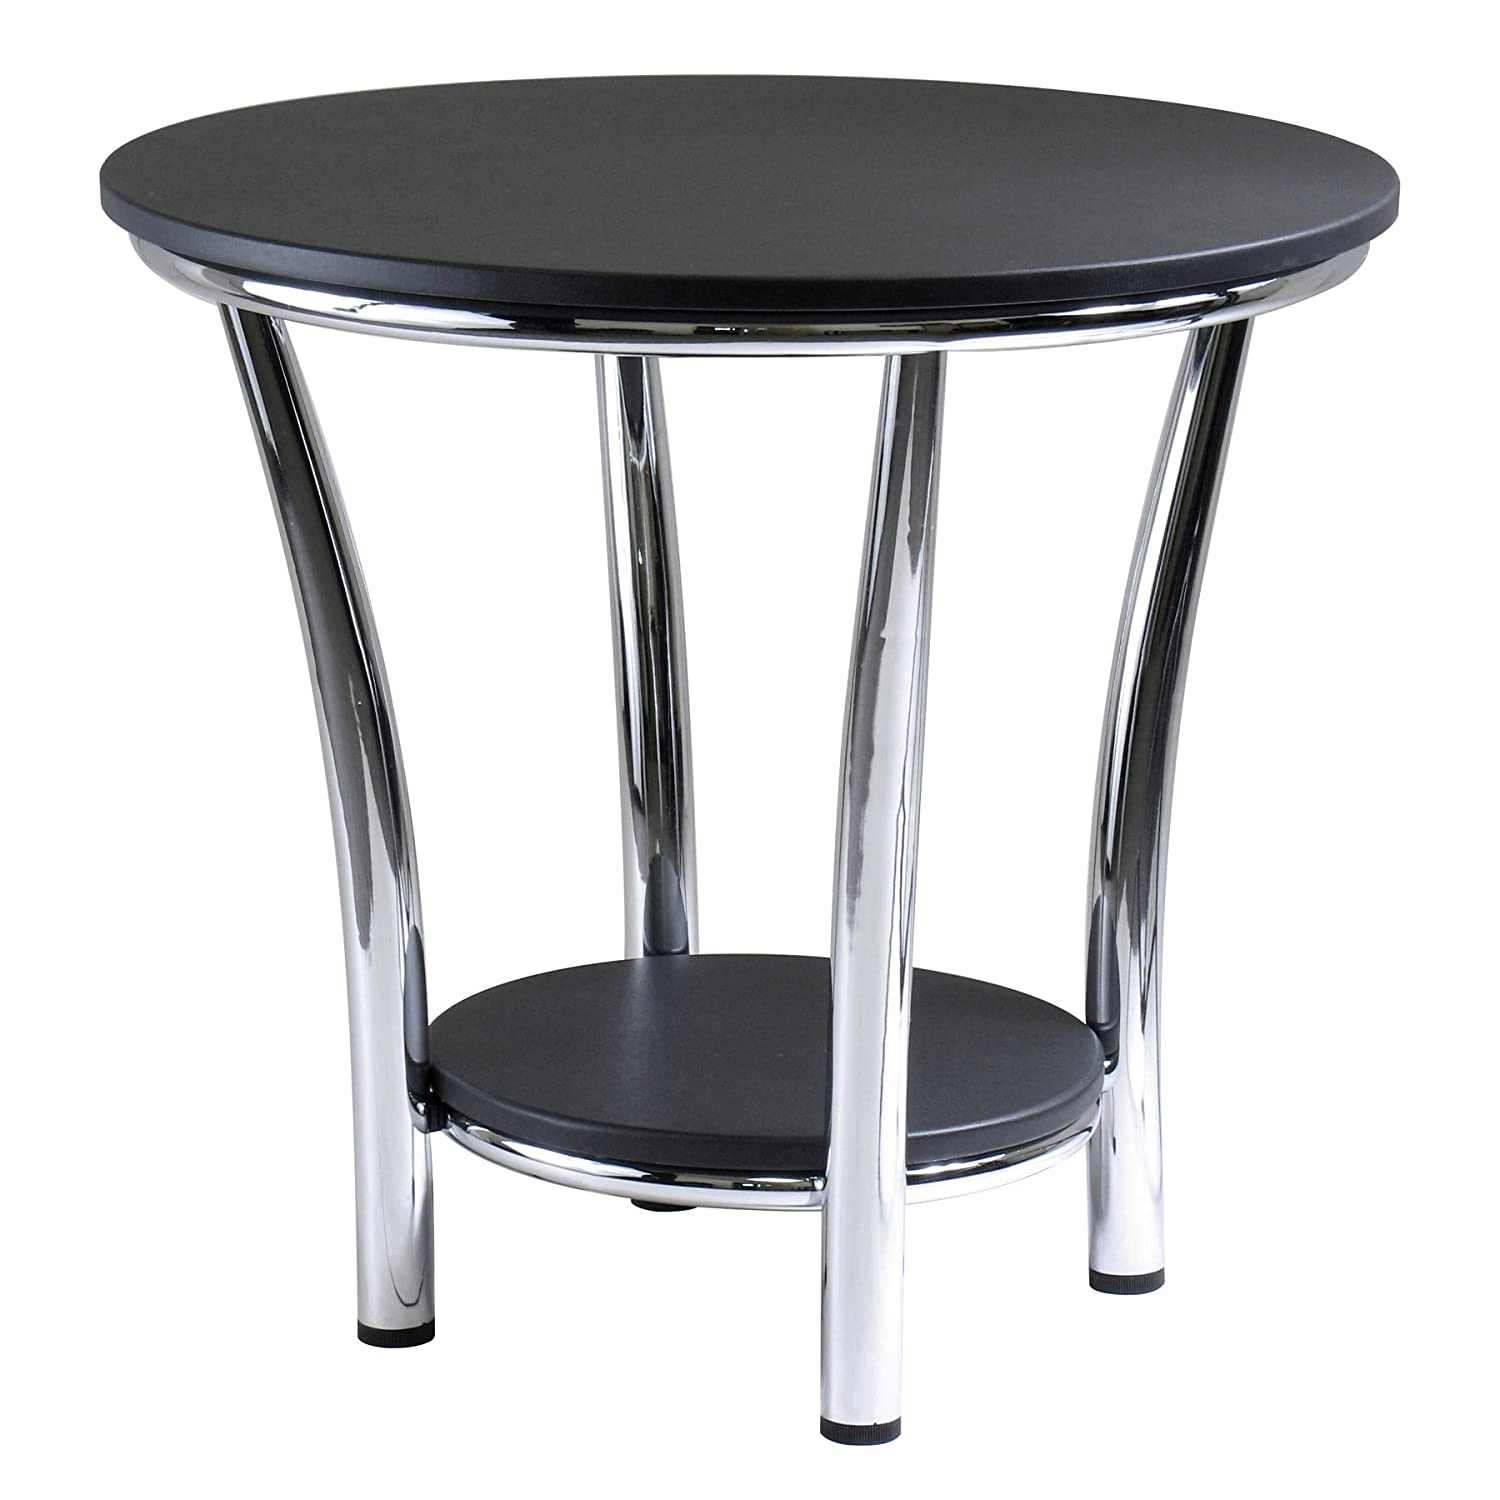 Amazon com winsome wood maya round end table black top metal legs kitchen dining